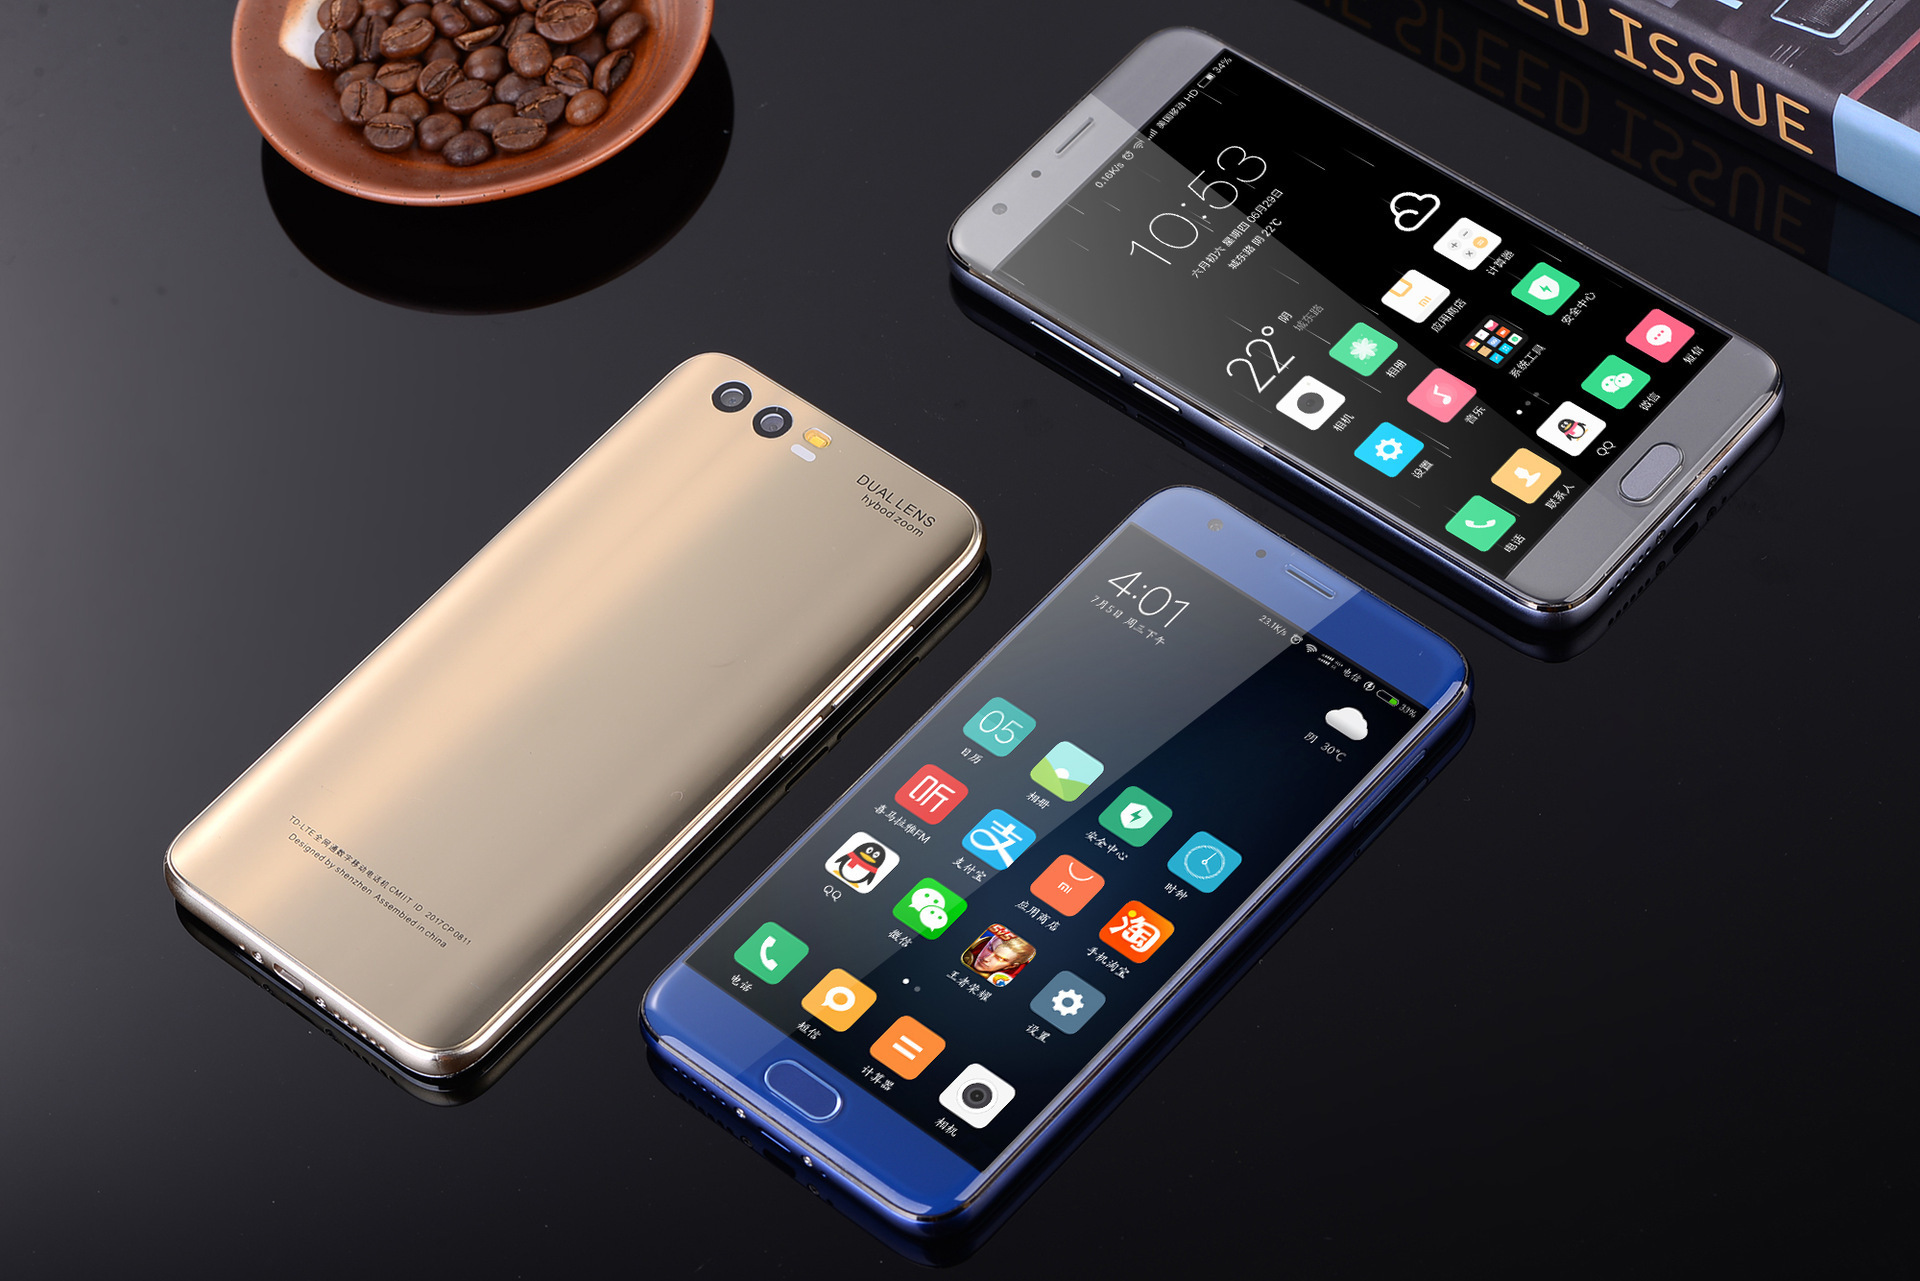 Unlocking Mobile Phone Intelligence Curved Screen 6 Inch Domestic Quality Goods Double Card Double Camera Move Telecom 4g Full Cnc